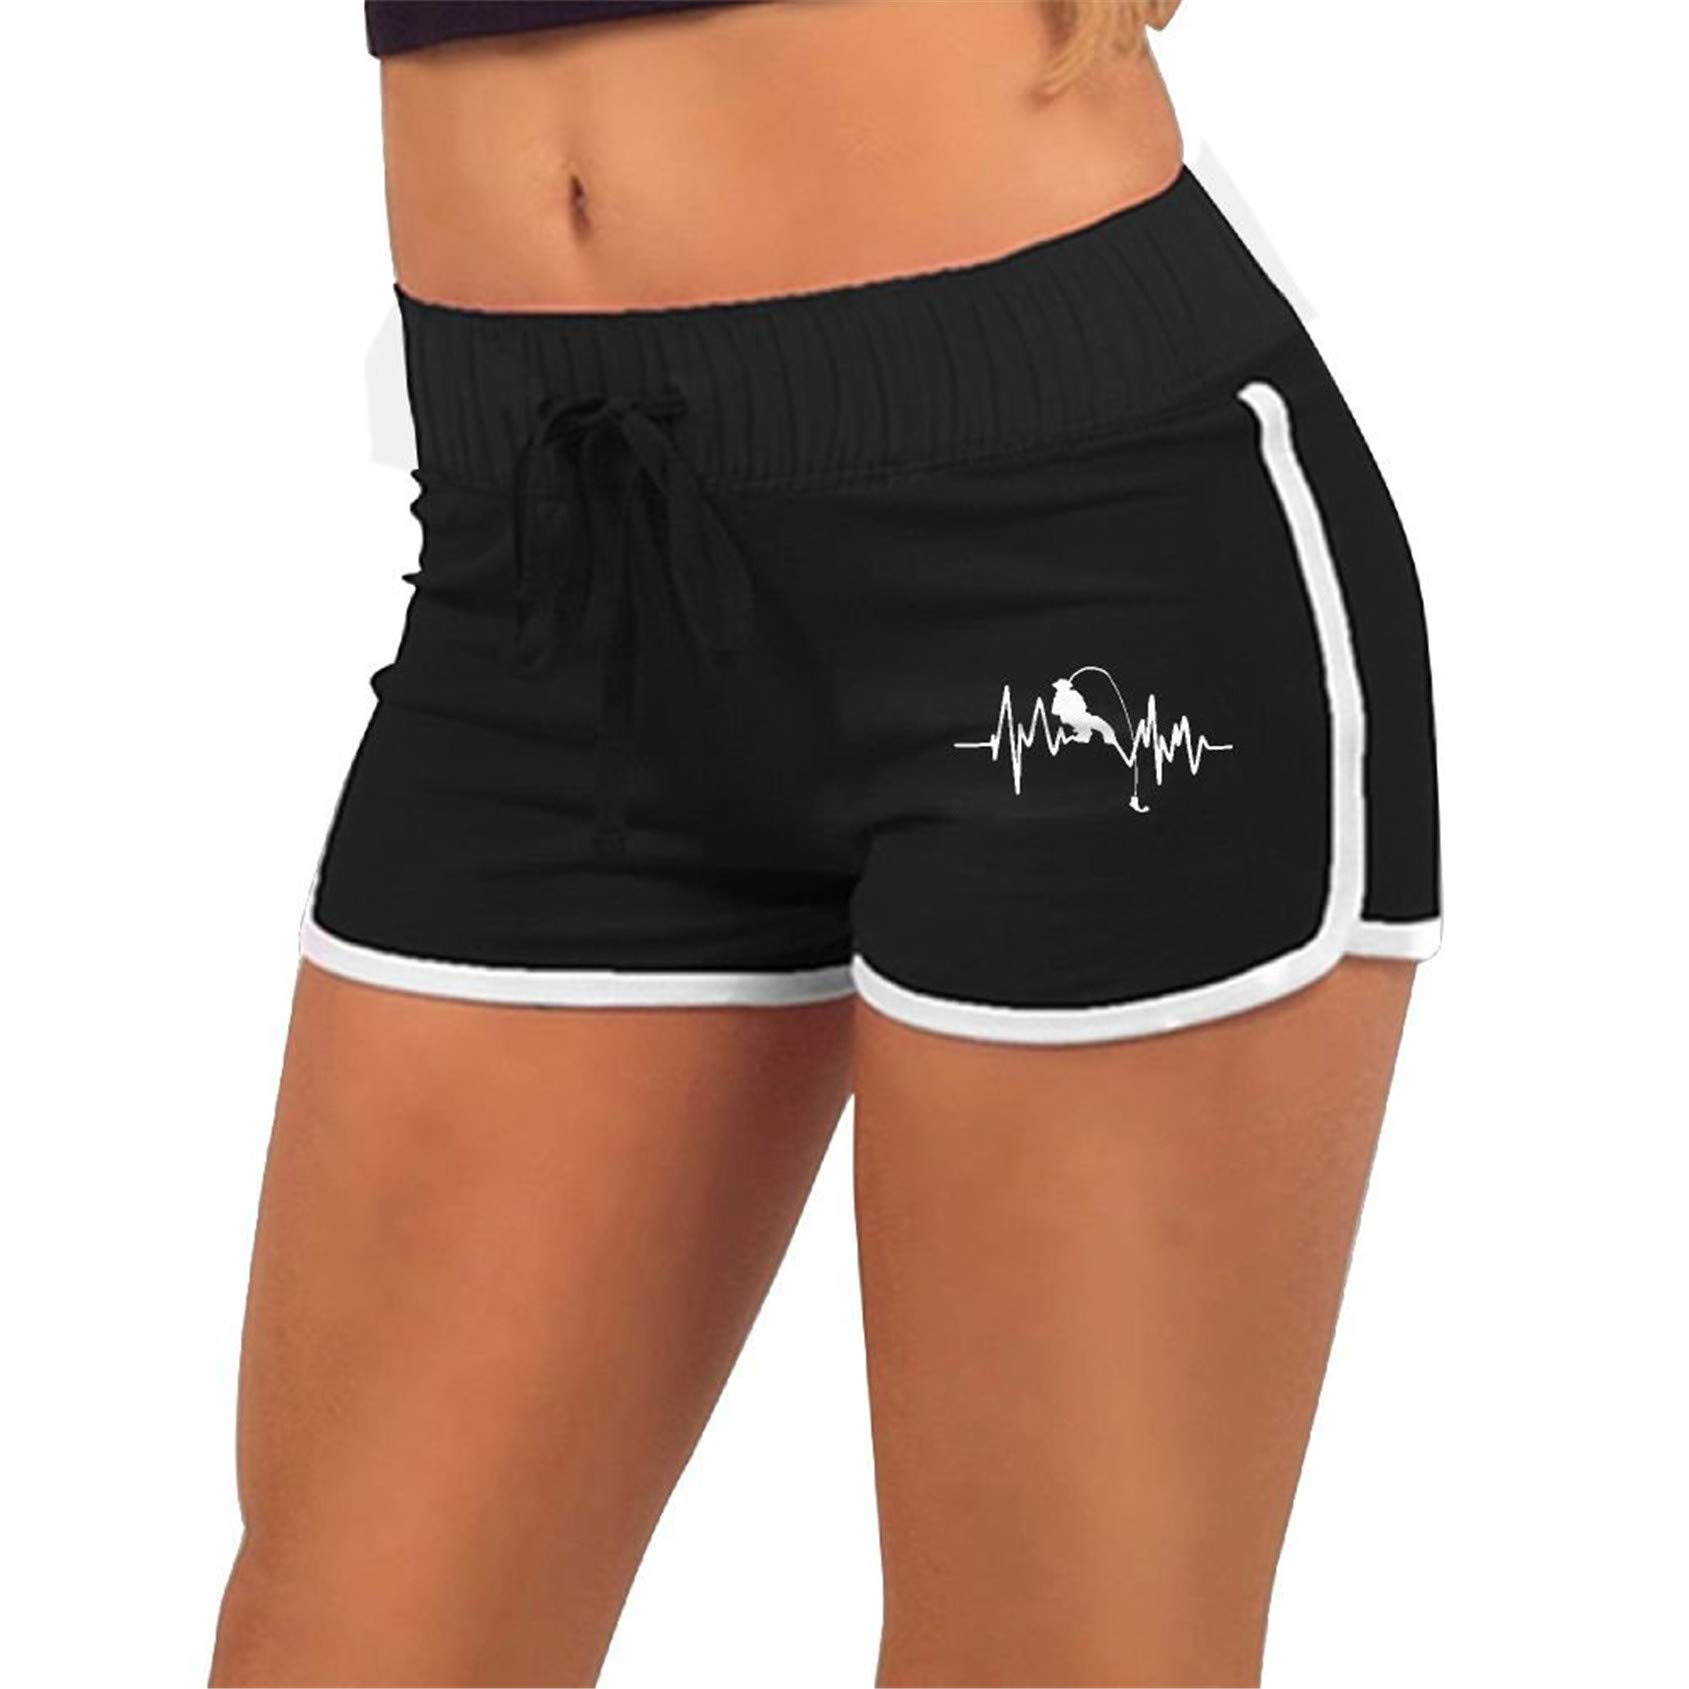 Fishing Heartbeat,Workout,Running Active Short Pants with,Athletic Elastic Waist Womens Sports Shorts